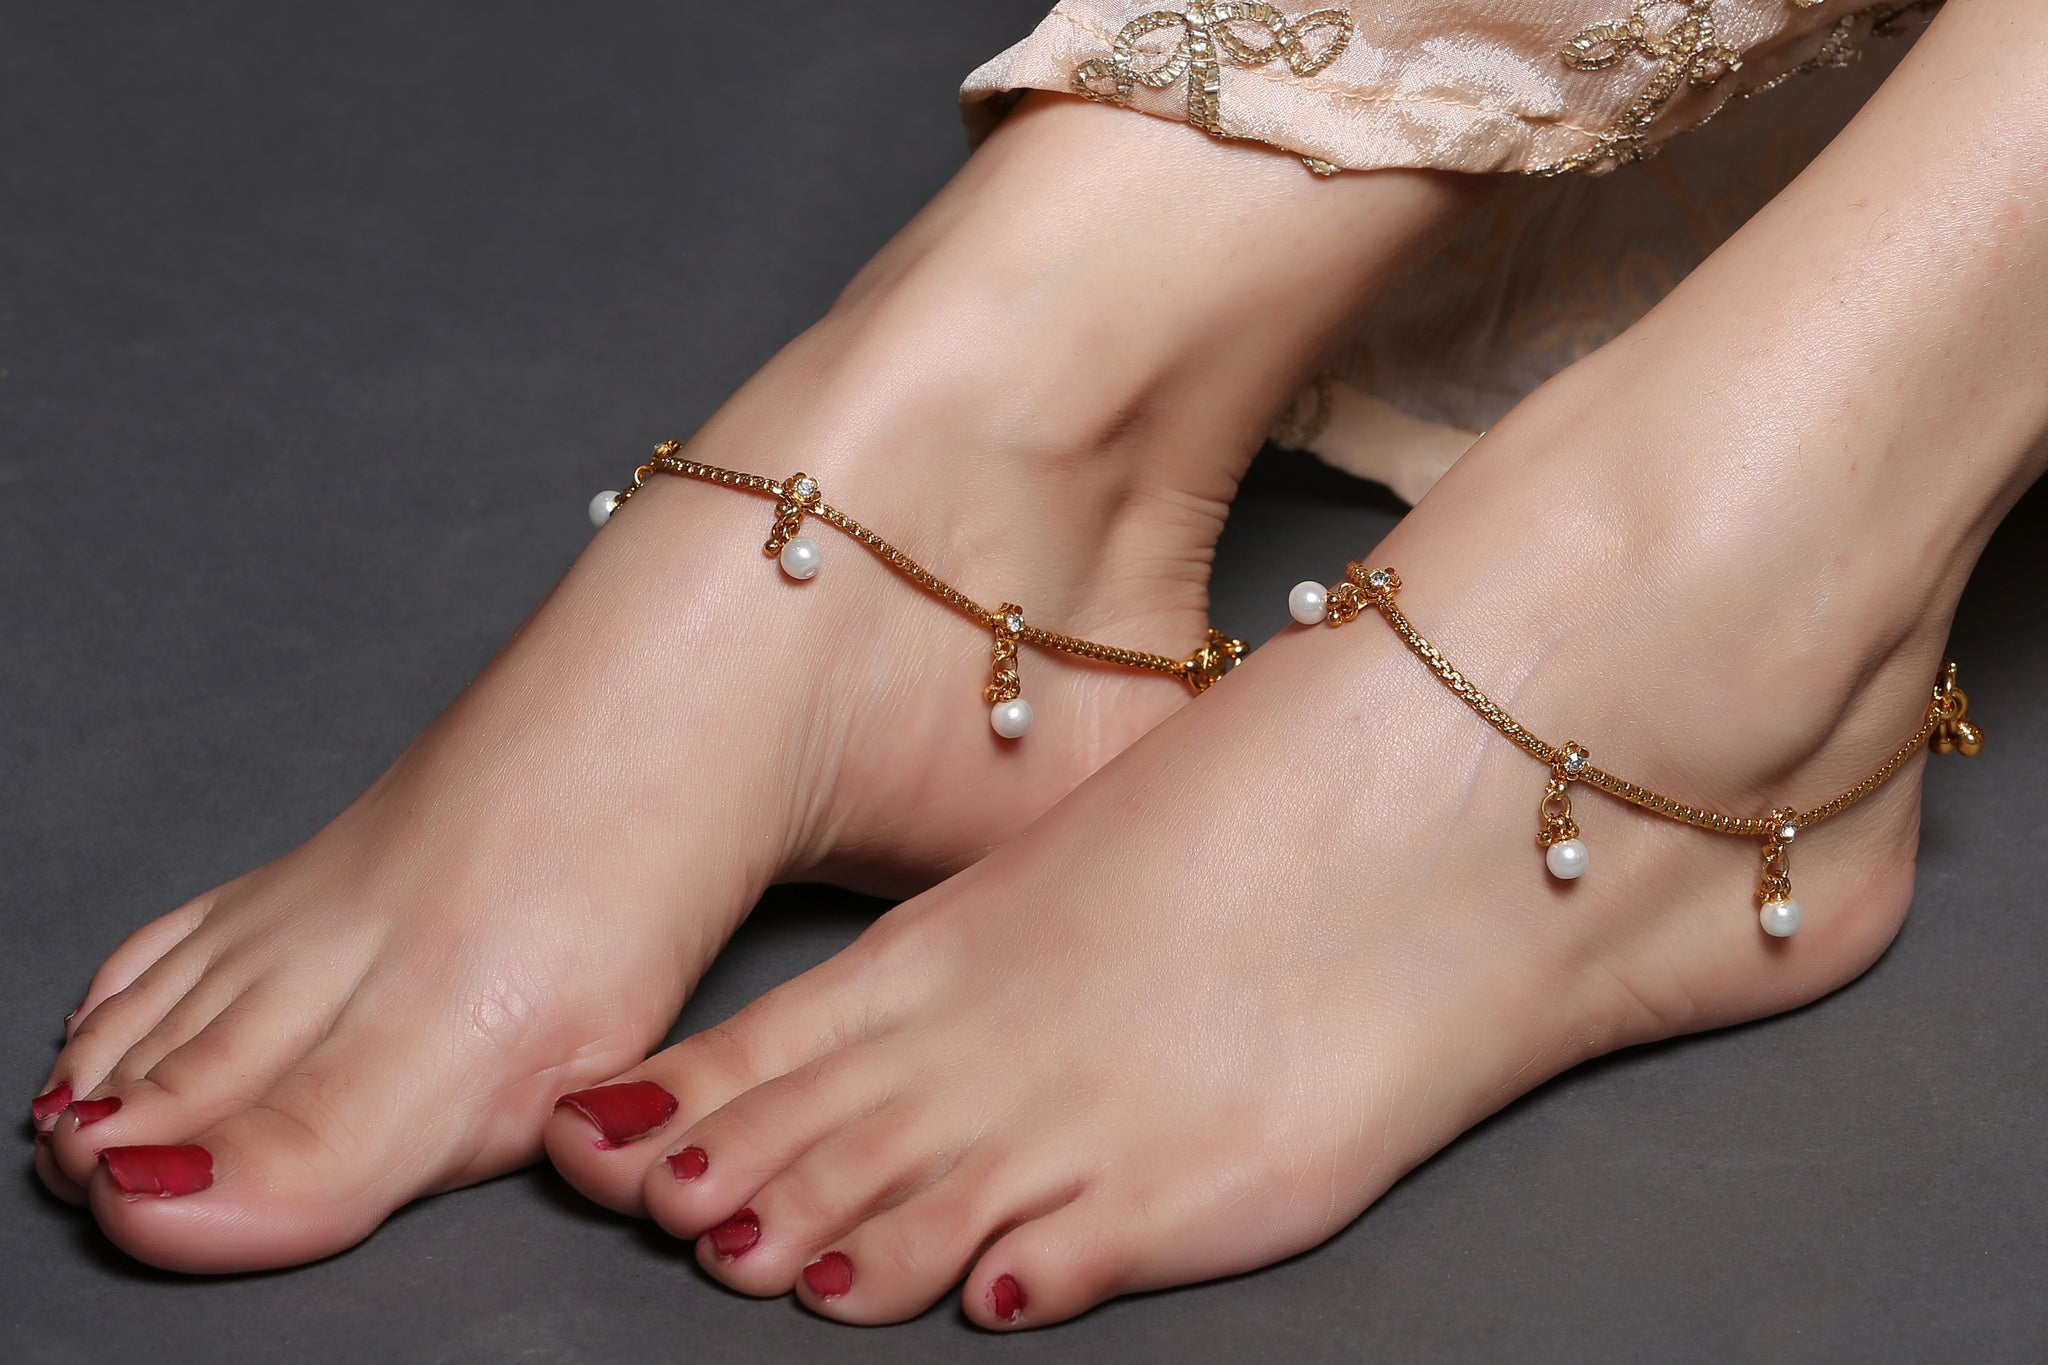 meyer gold gosia infinity shop bracelet anklet jewelry chain